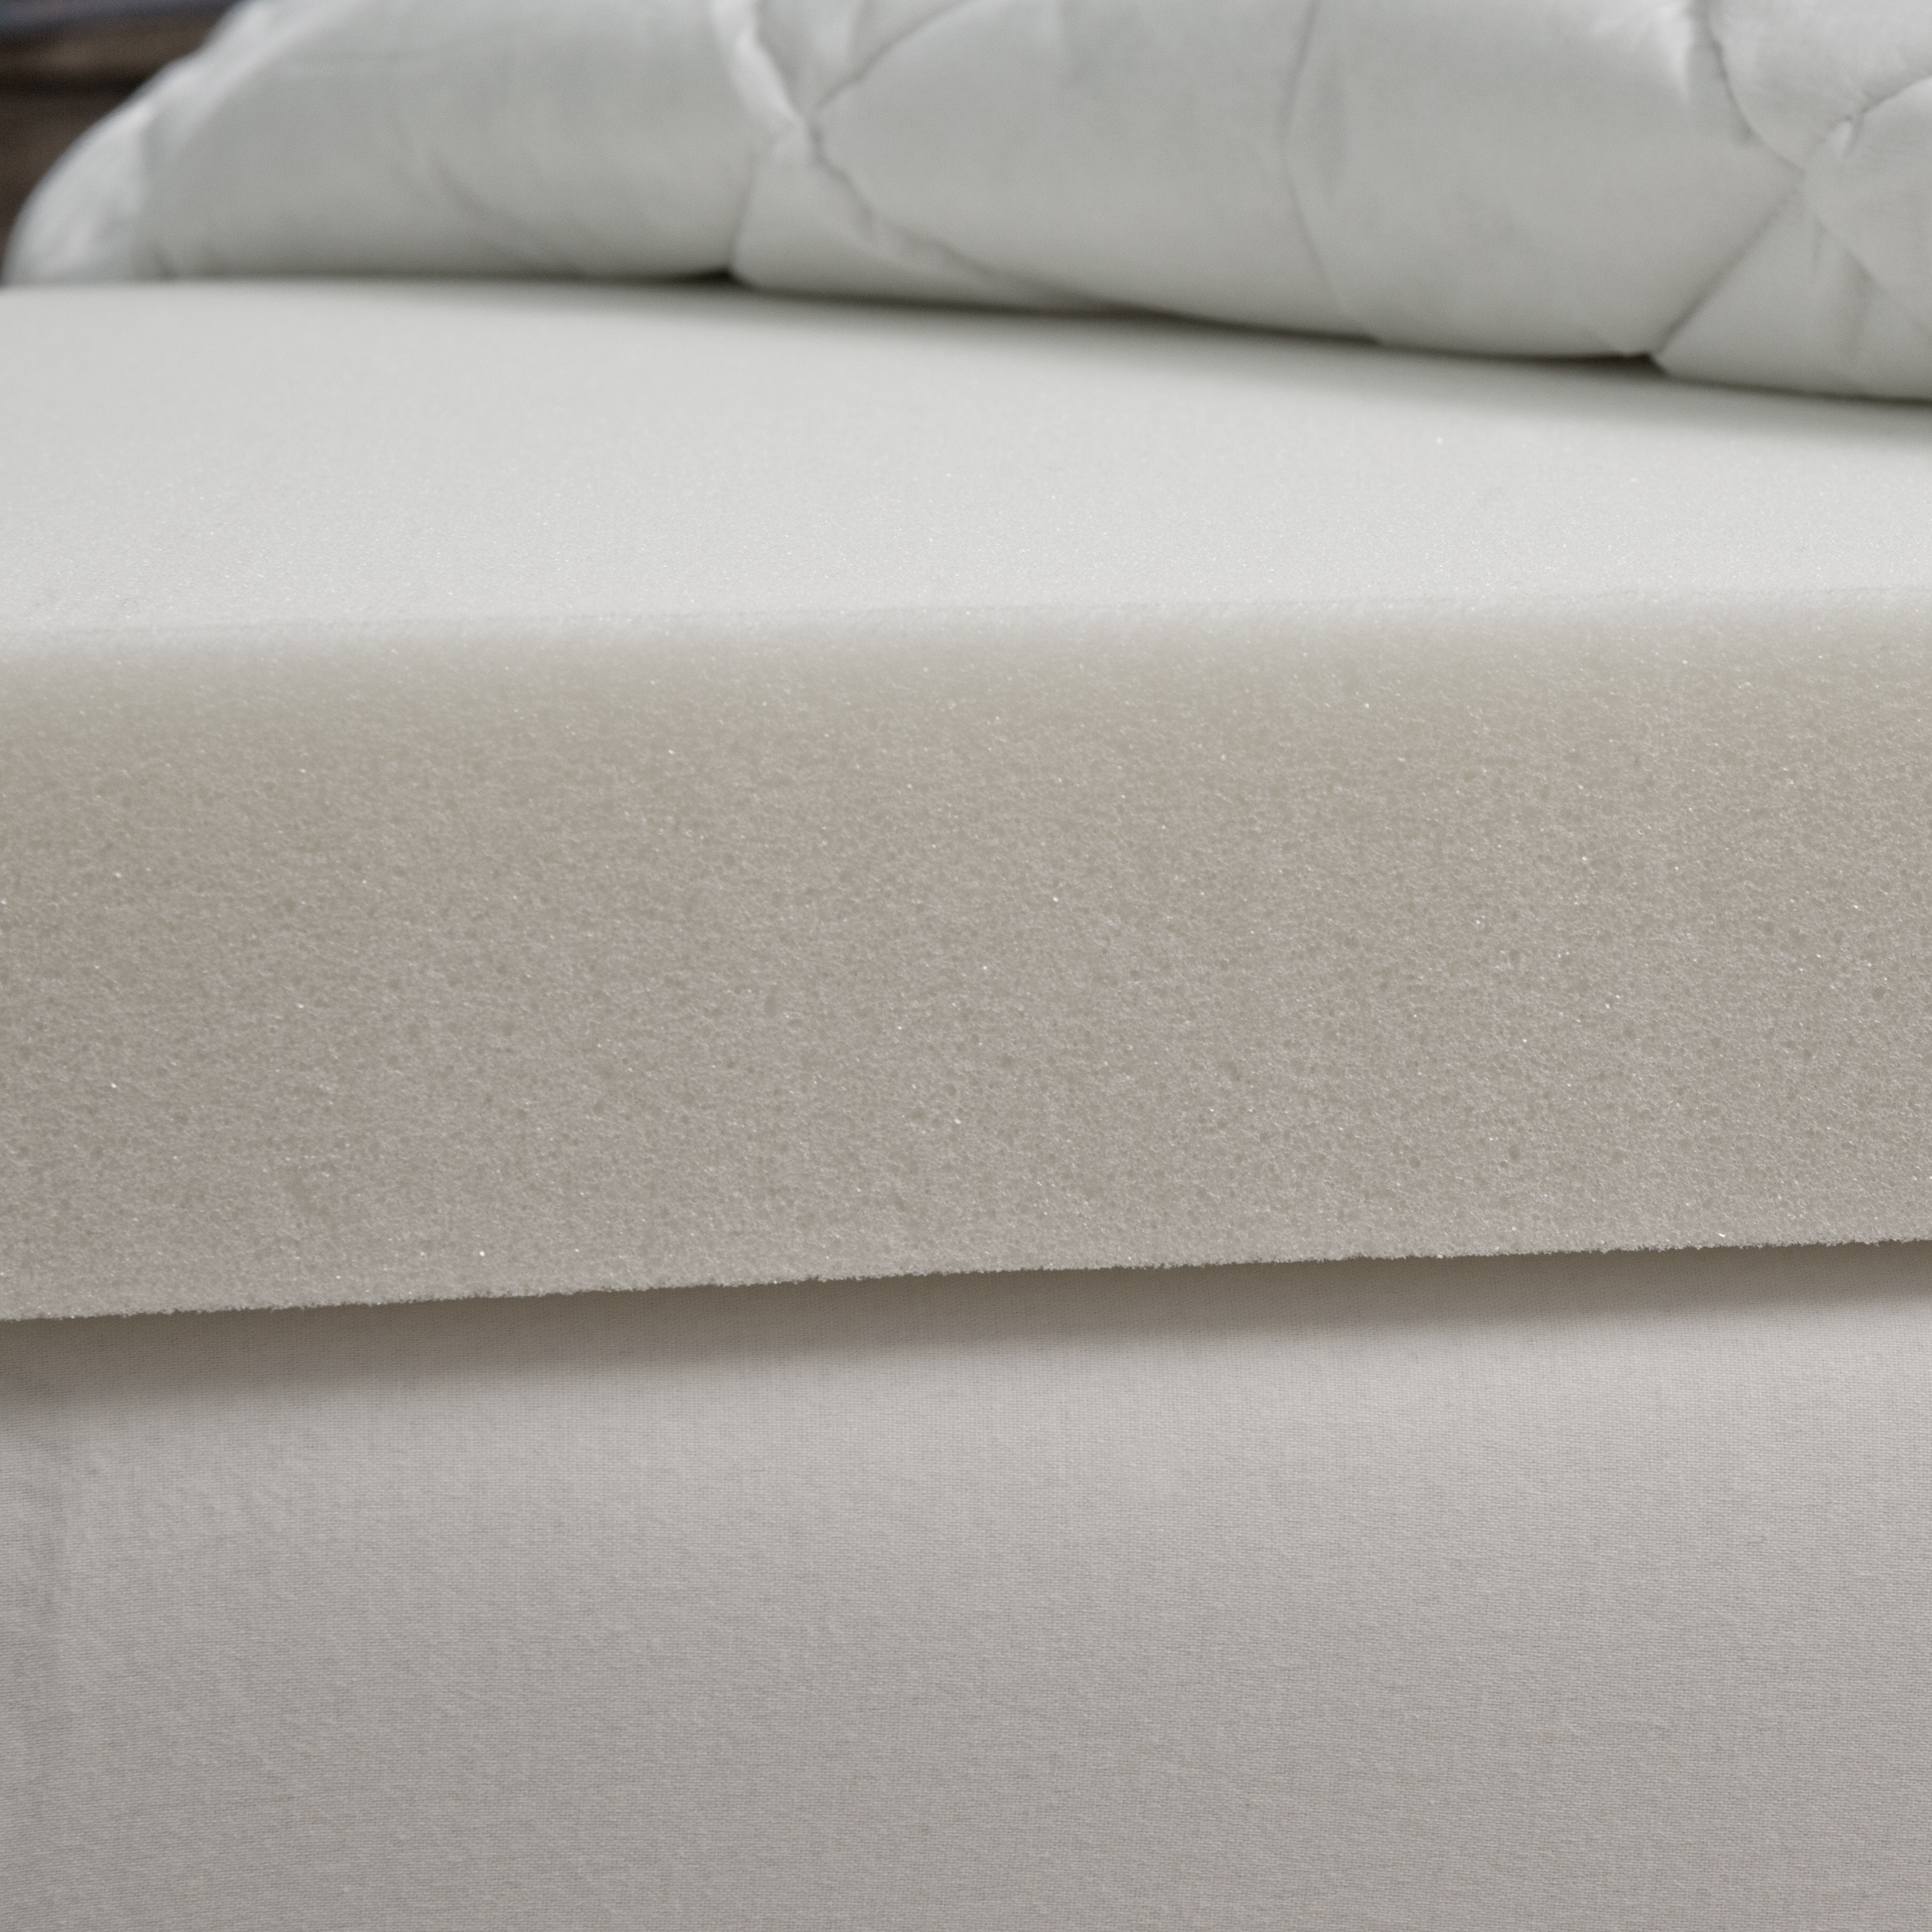 bed fiber size product free bath bedding topper full abff microfiber twin box skirt white baffled with mattress today shipping overstock